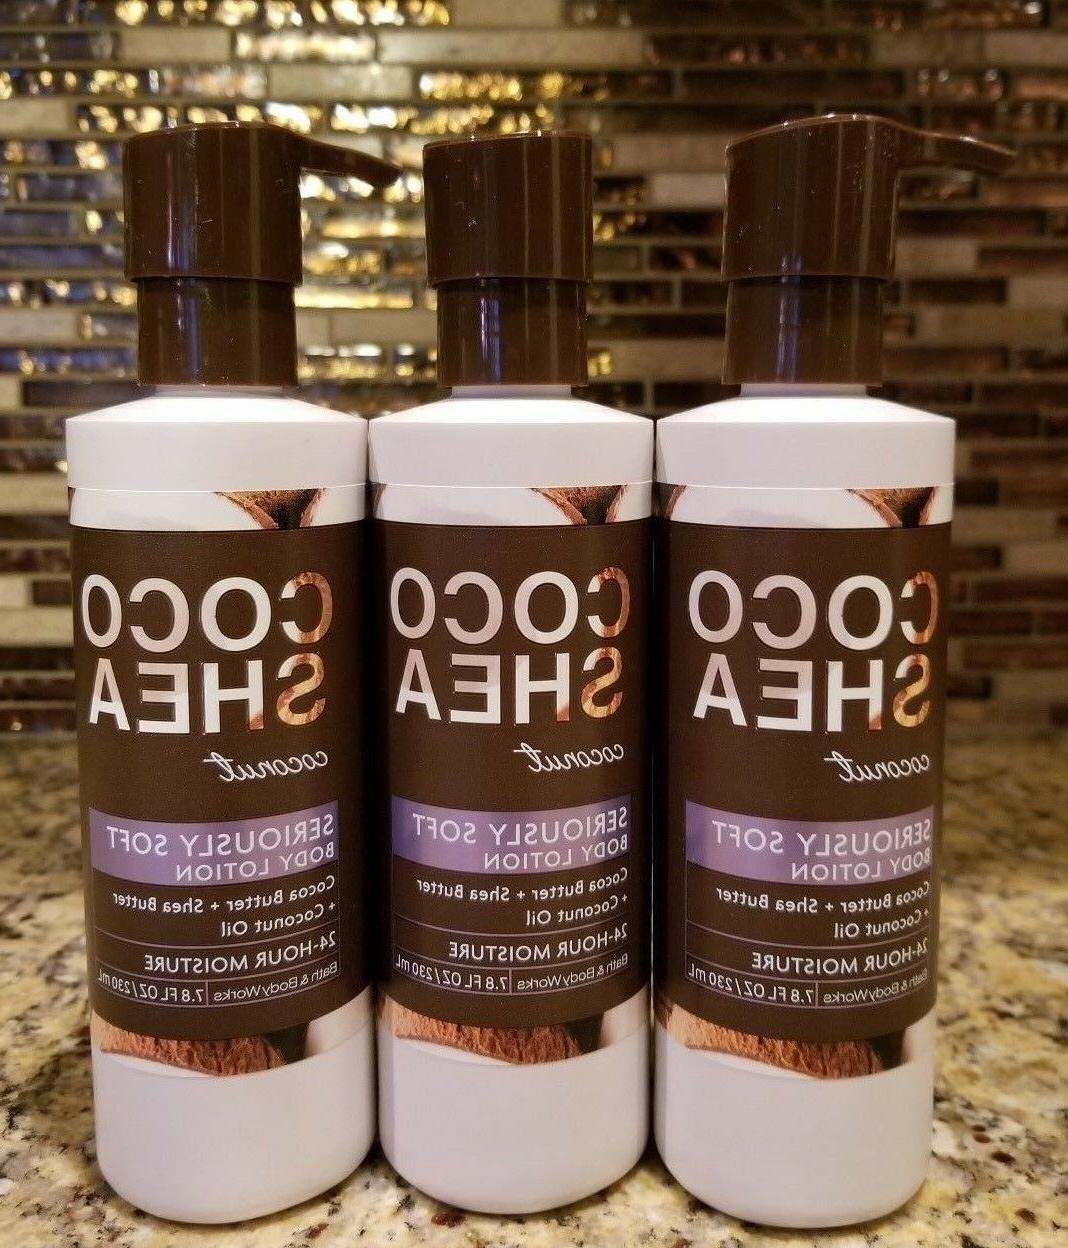 LOT OF 3 BATH AND BODY WORKS COCO SHEA COCONUT SERIOUSLY SOF